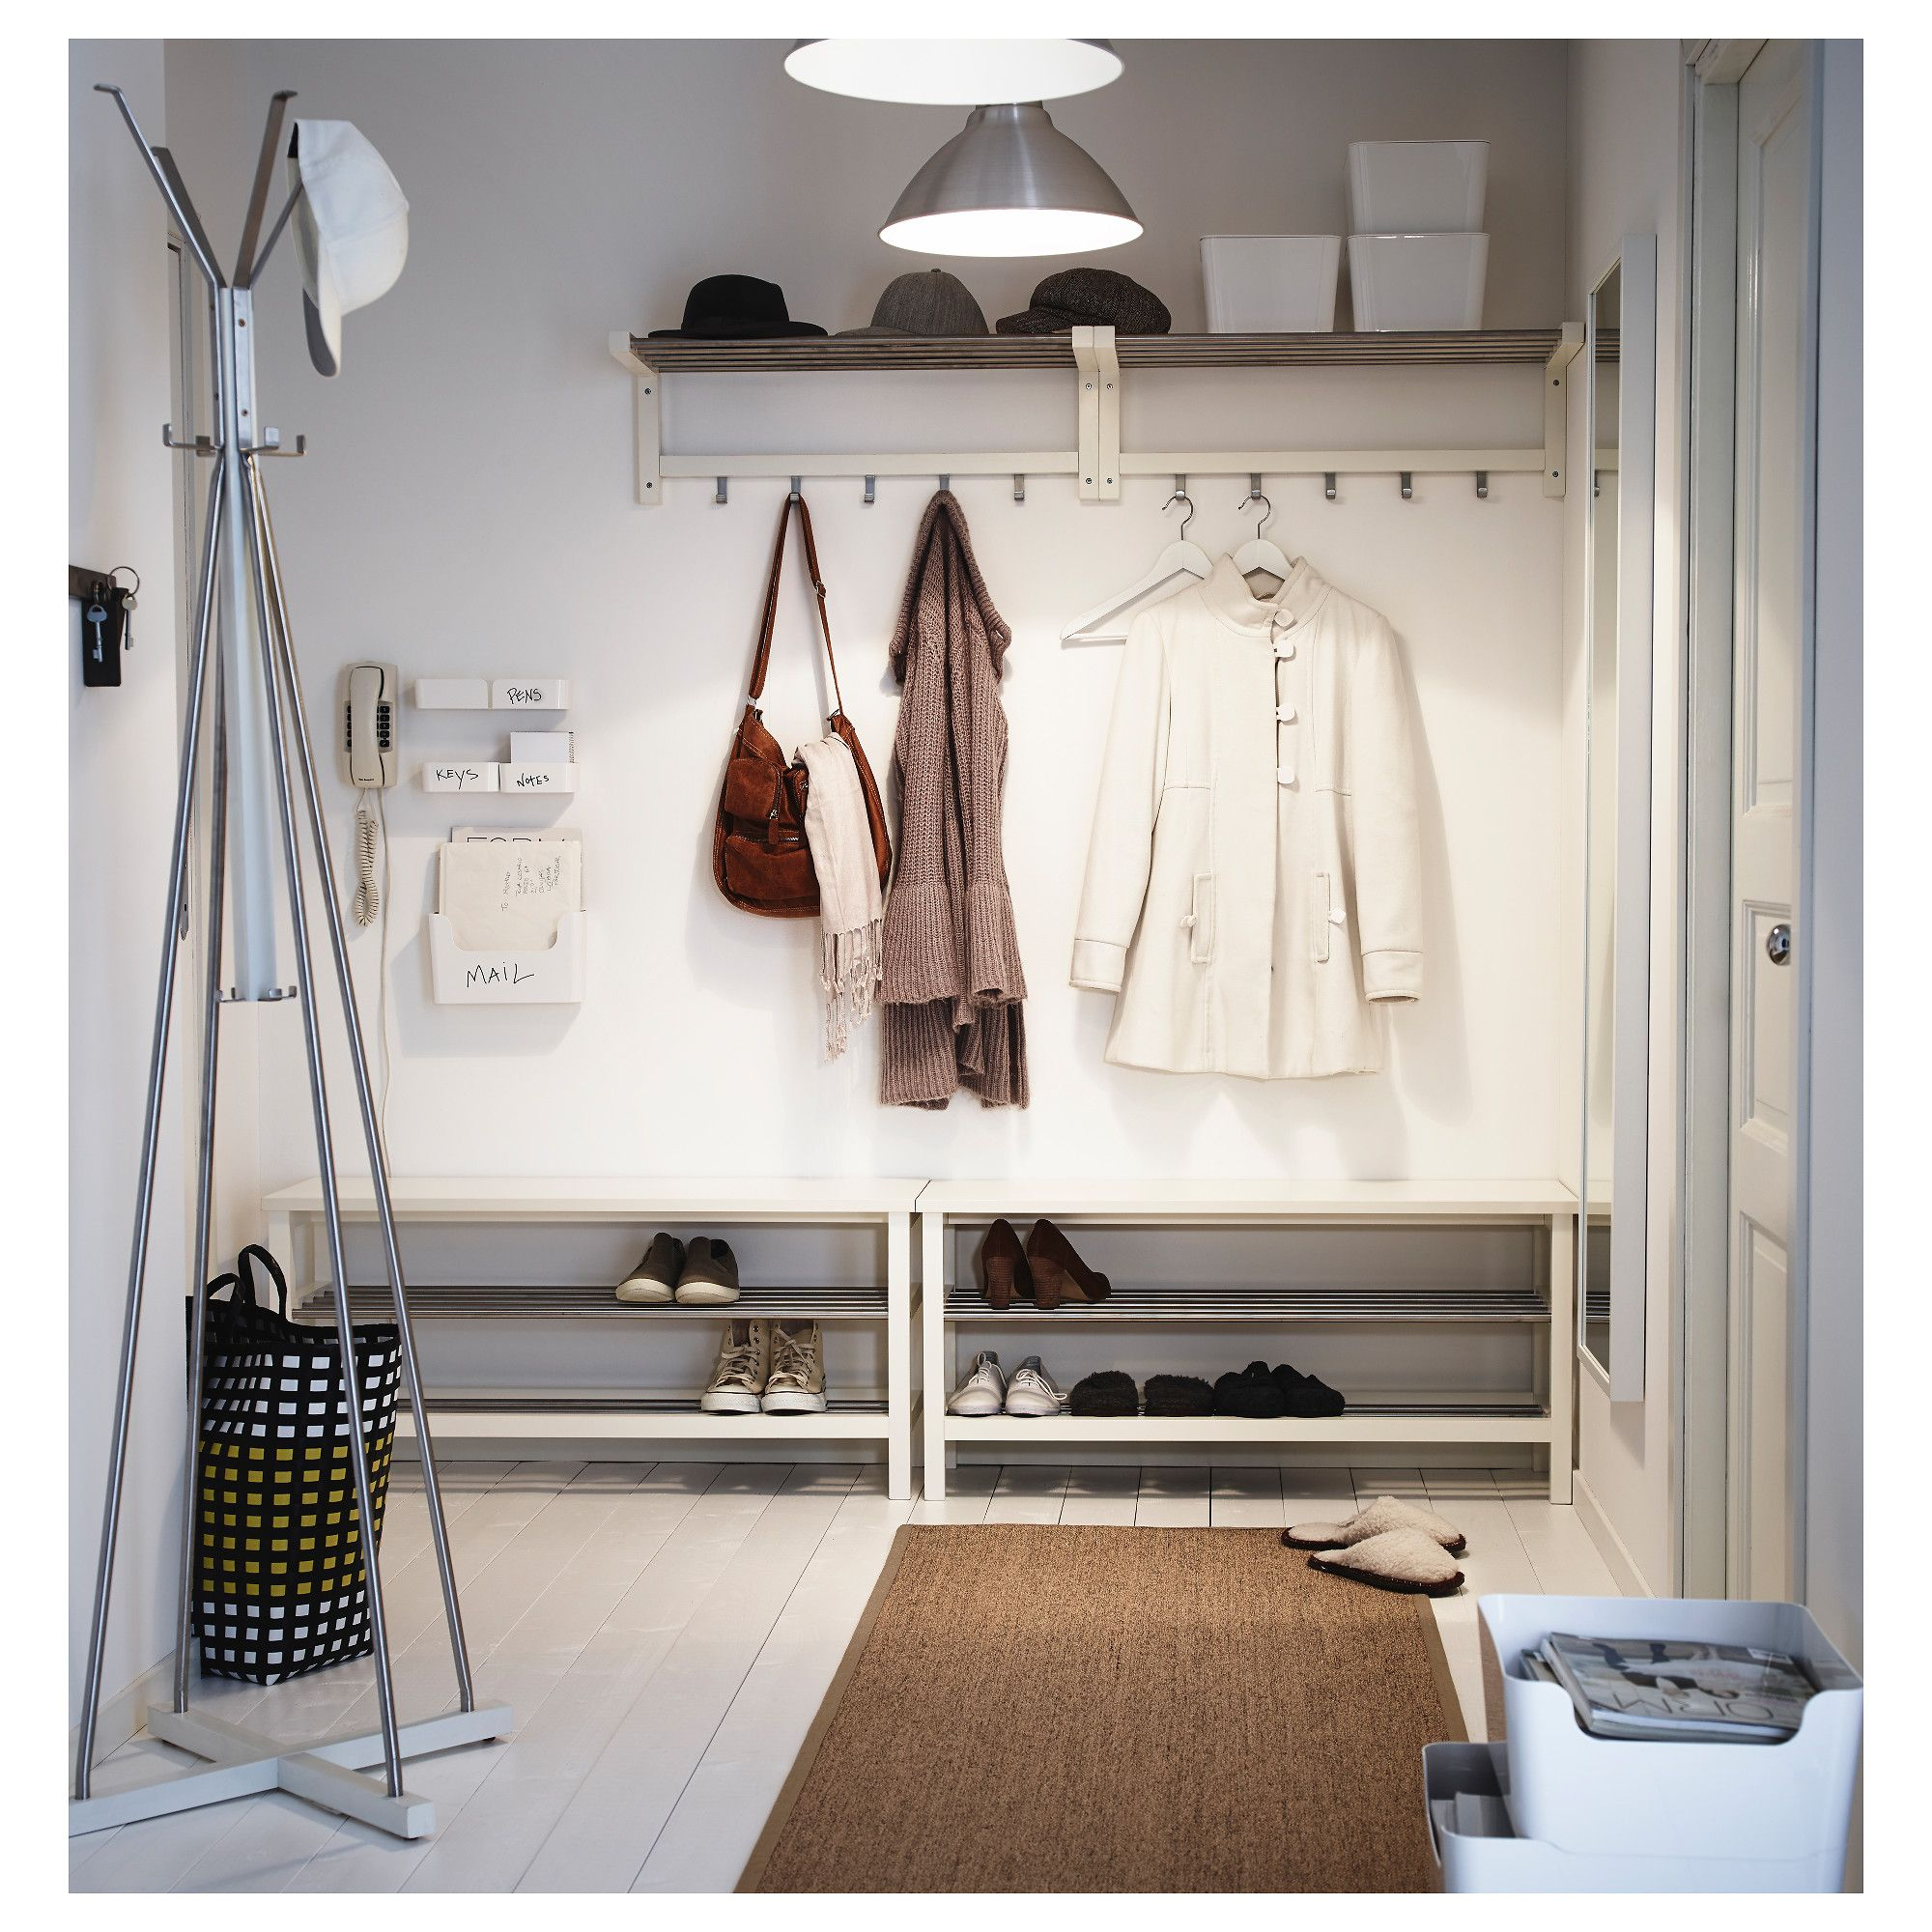 Phenomenal Ikea Tjusig Bench With Shoe Storage White Bench With Lamtechconsult Wood Chair Design Ideas Lamtechconsultcom